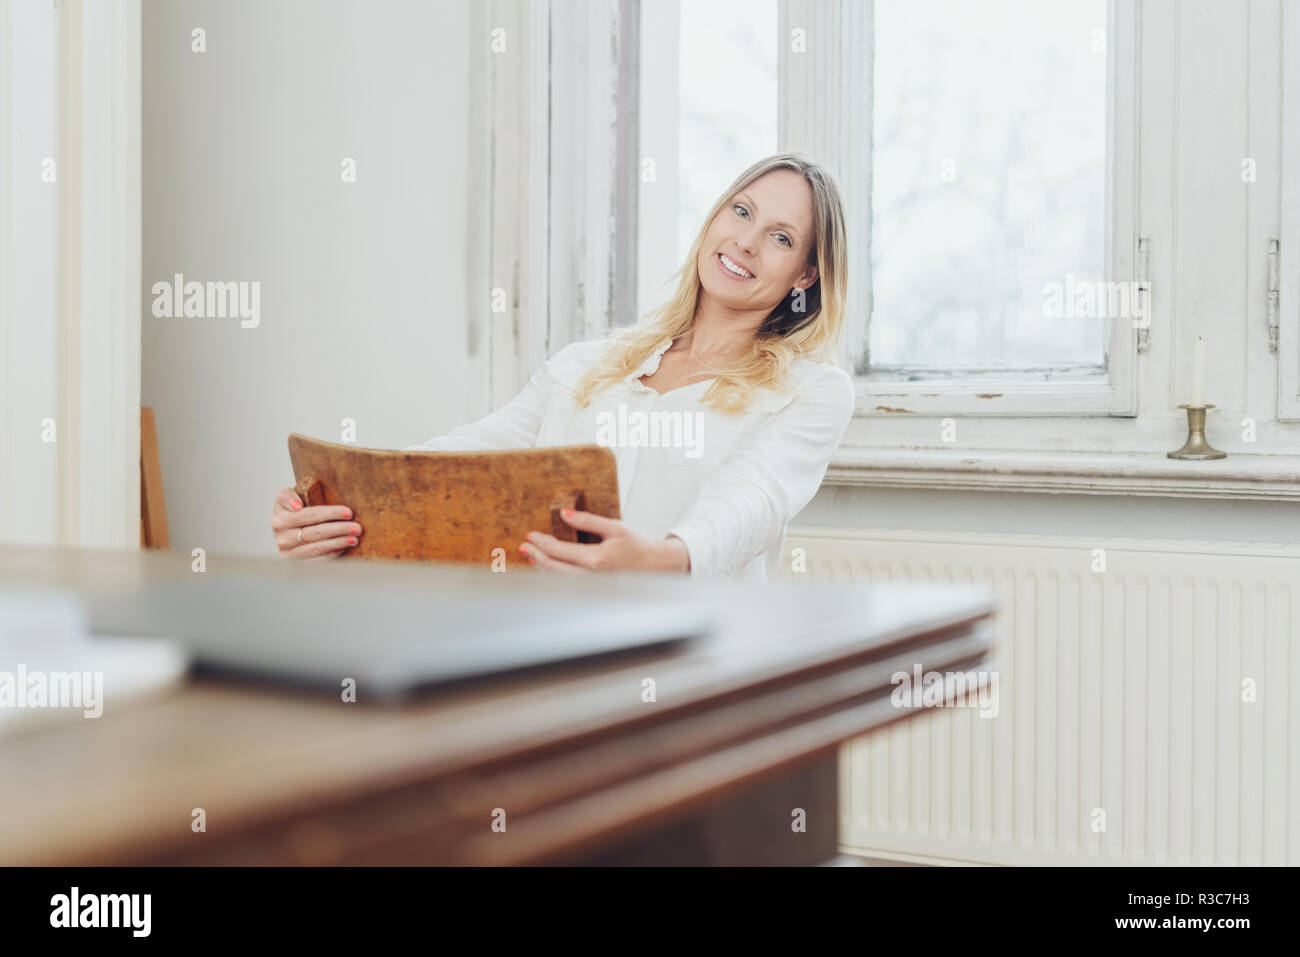 Happy relaxed woman swinging on a chair at home as she grins at the camera with a table and laptop blurred in the foreground - Stock Image